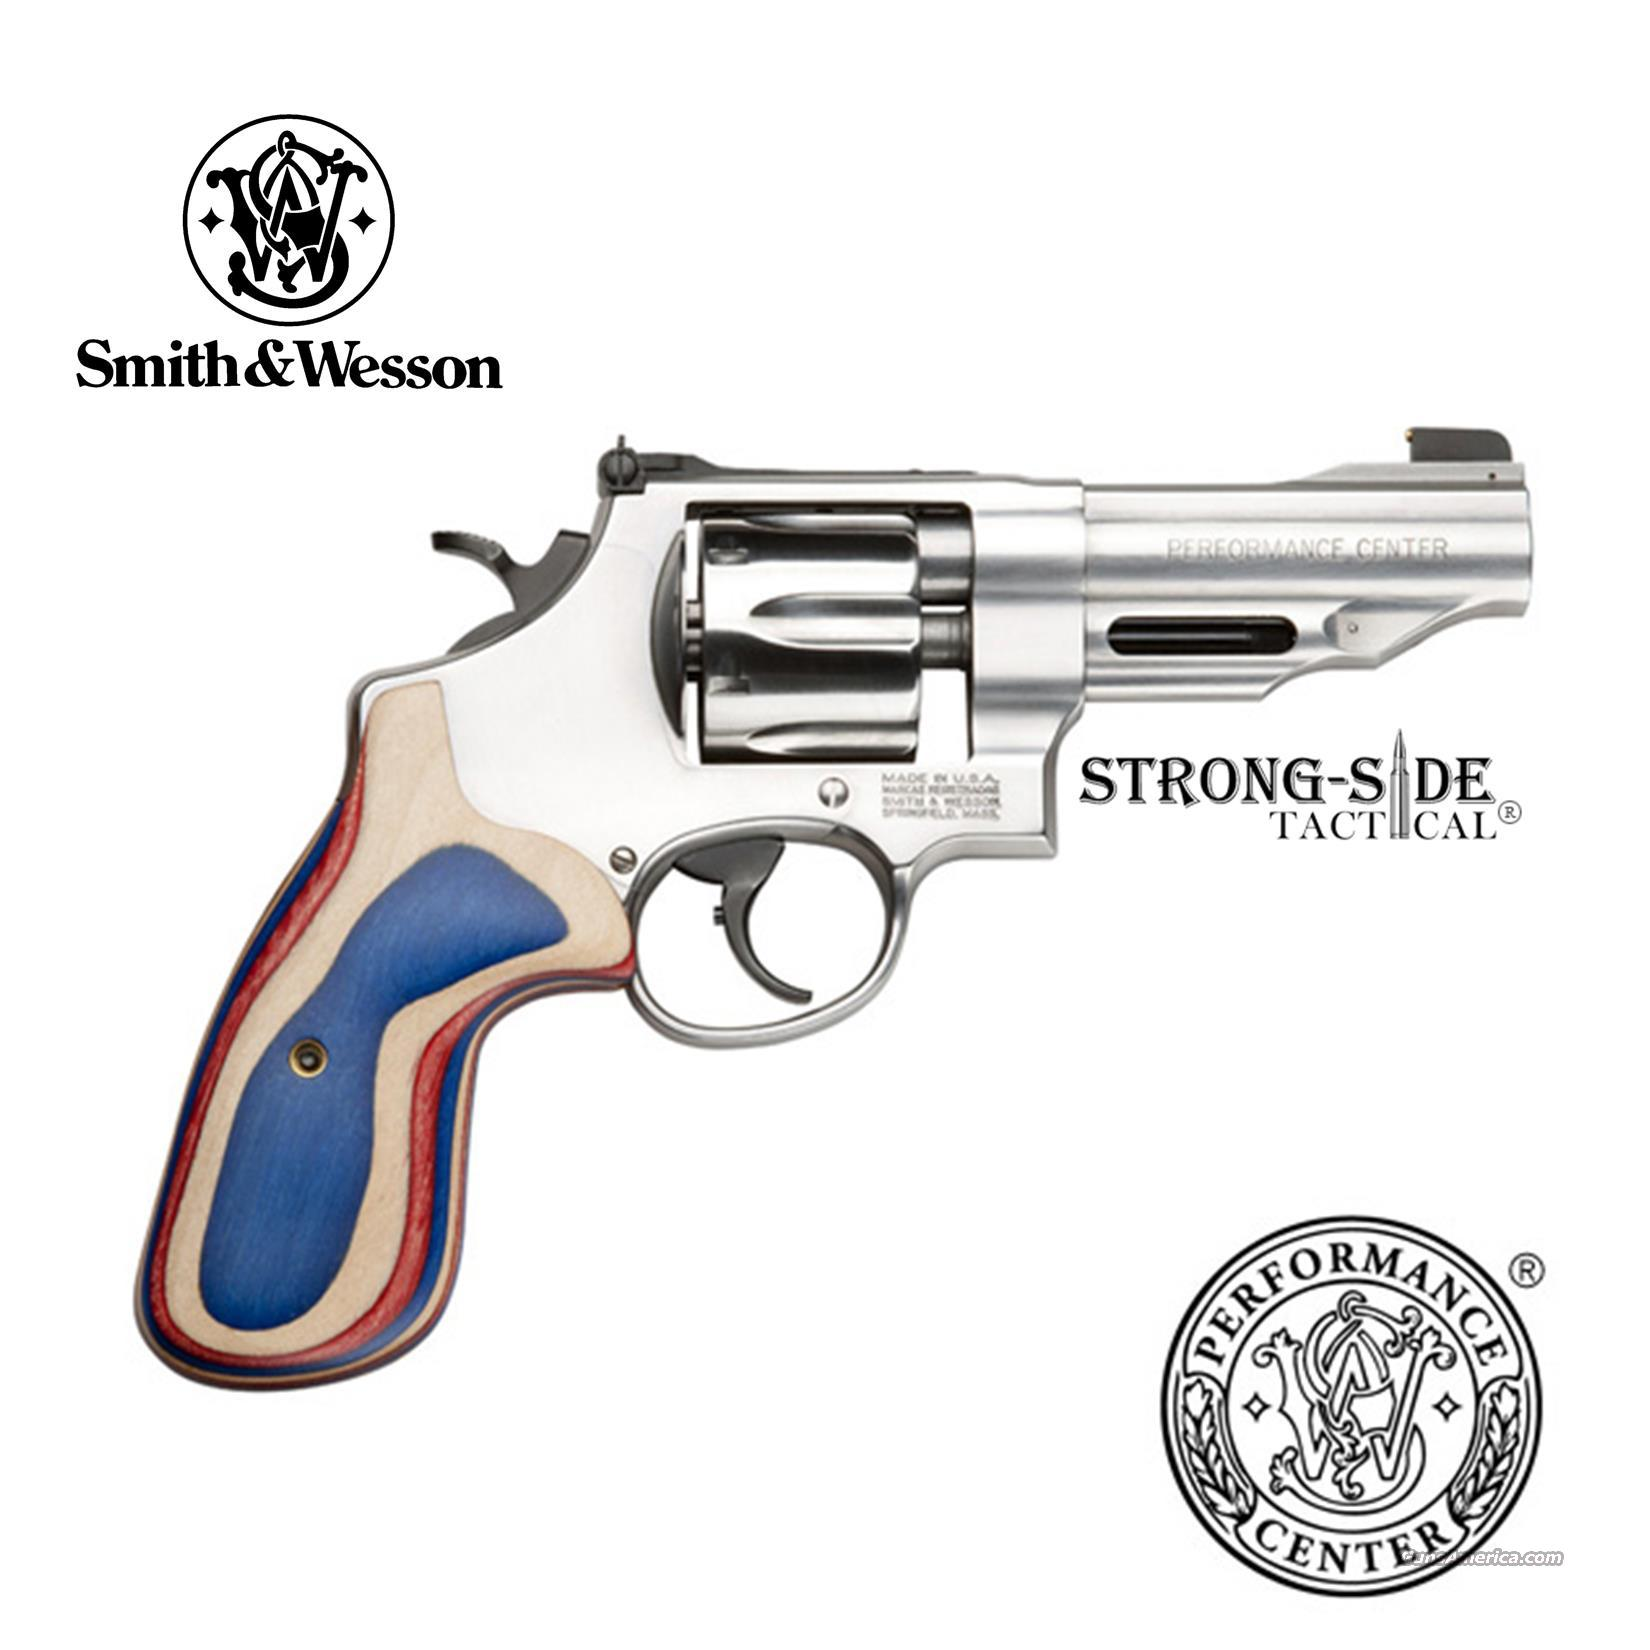 "Smith & Wesson Model 625 JM, 4"" Stainless Steel .45 ACP 6 Round Revolver (Performance Center) Model 170161 SHIPS FOR FREE, NO CREDIT CARD FEES  Guns > Pistols > Smith & Wesson Revolvers > Performance Center"